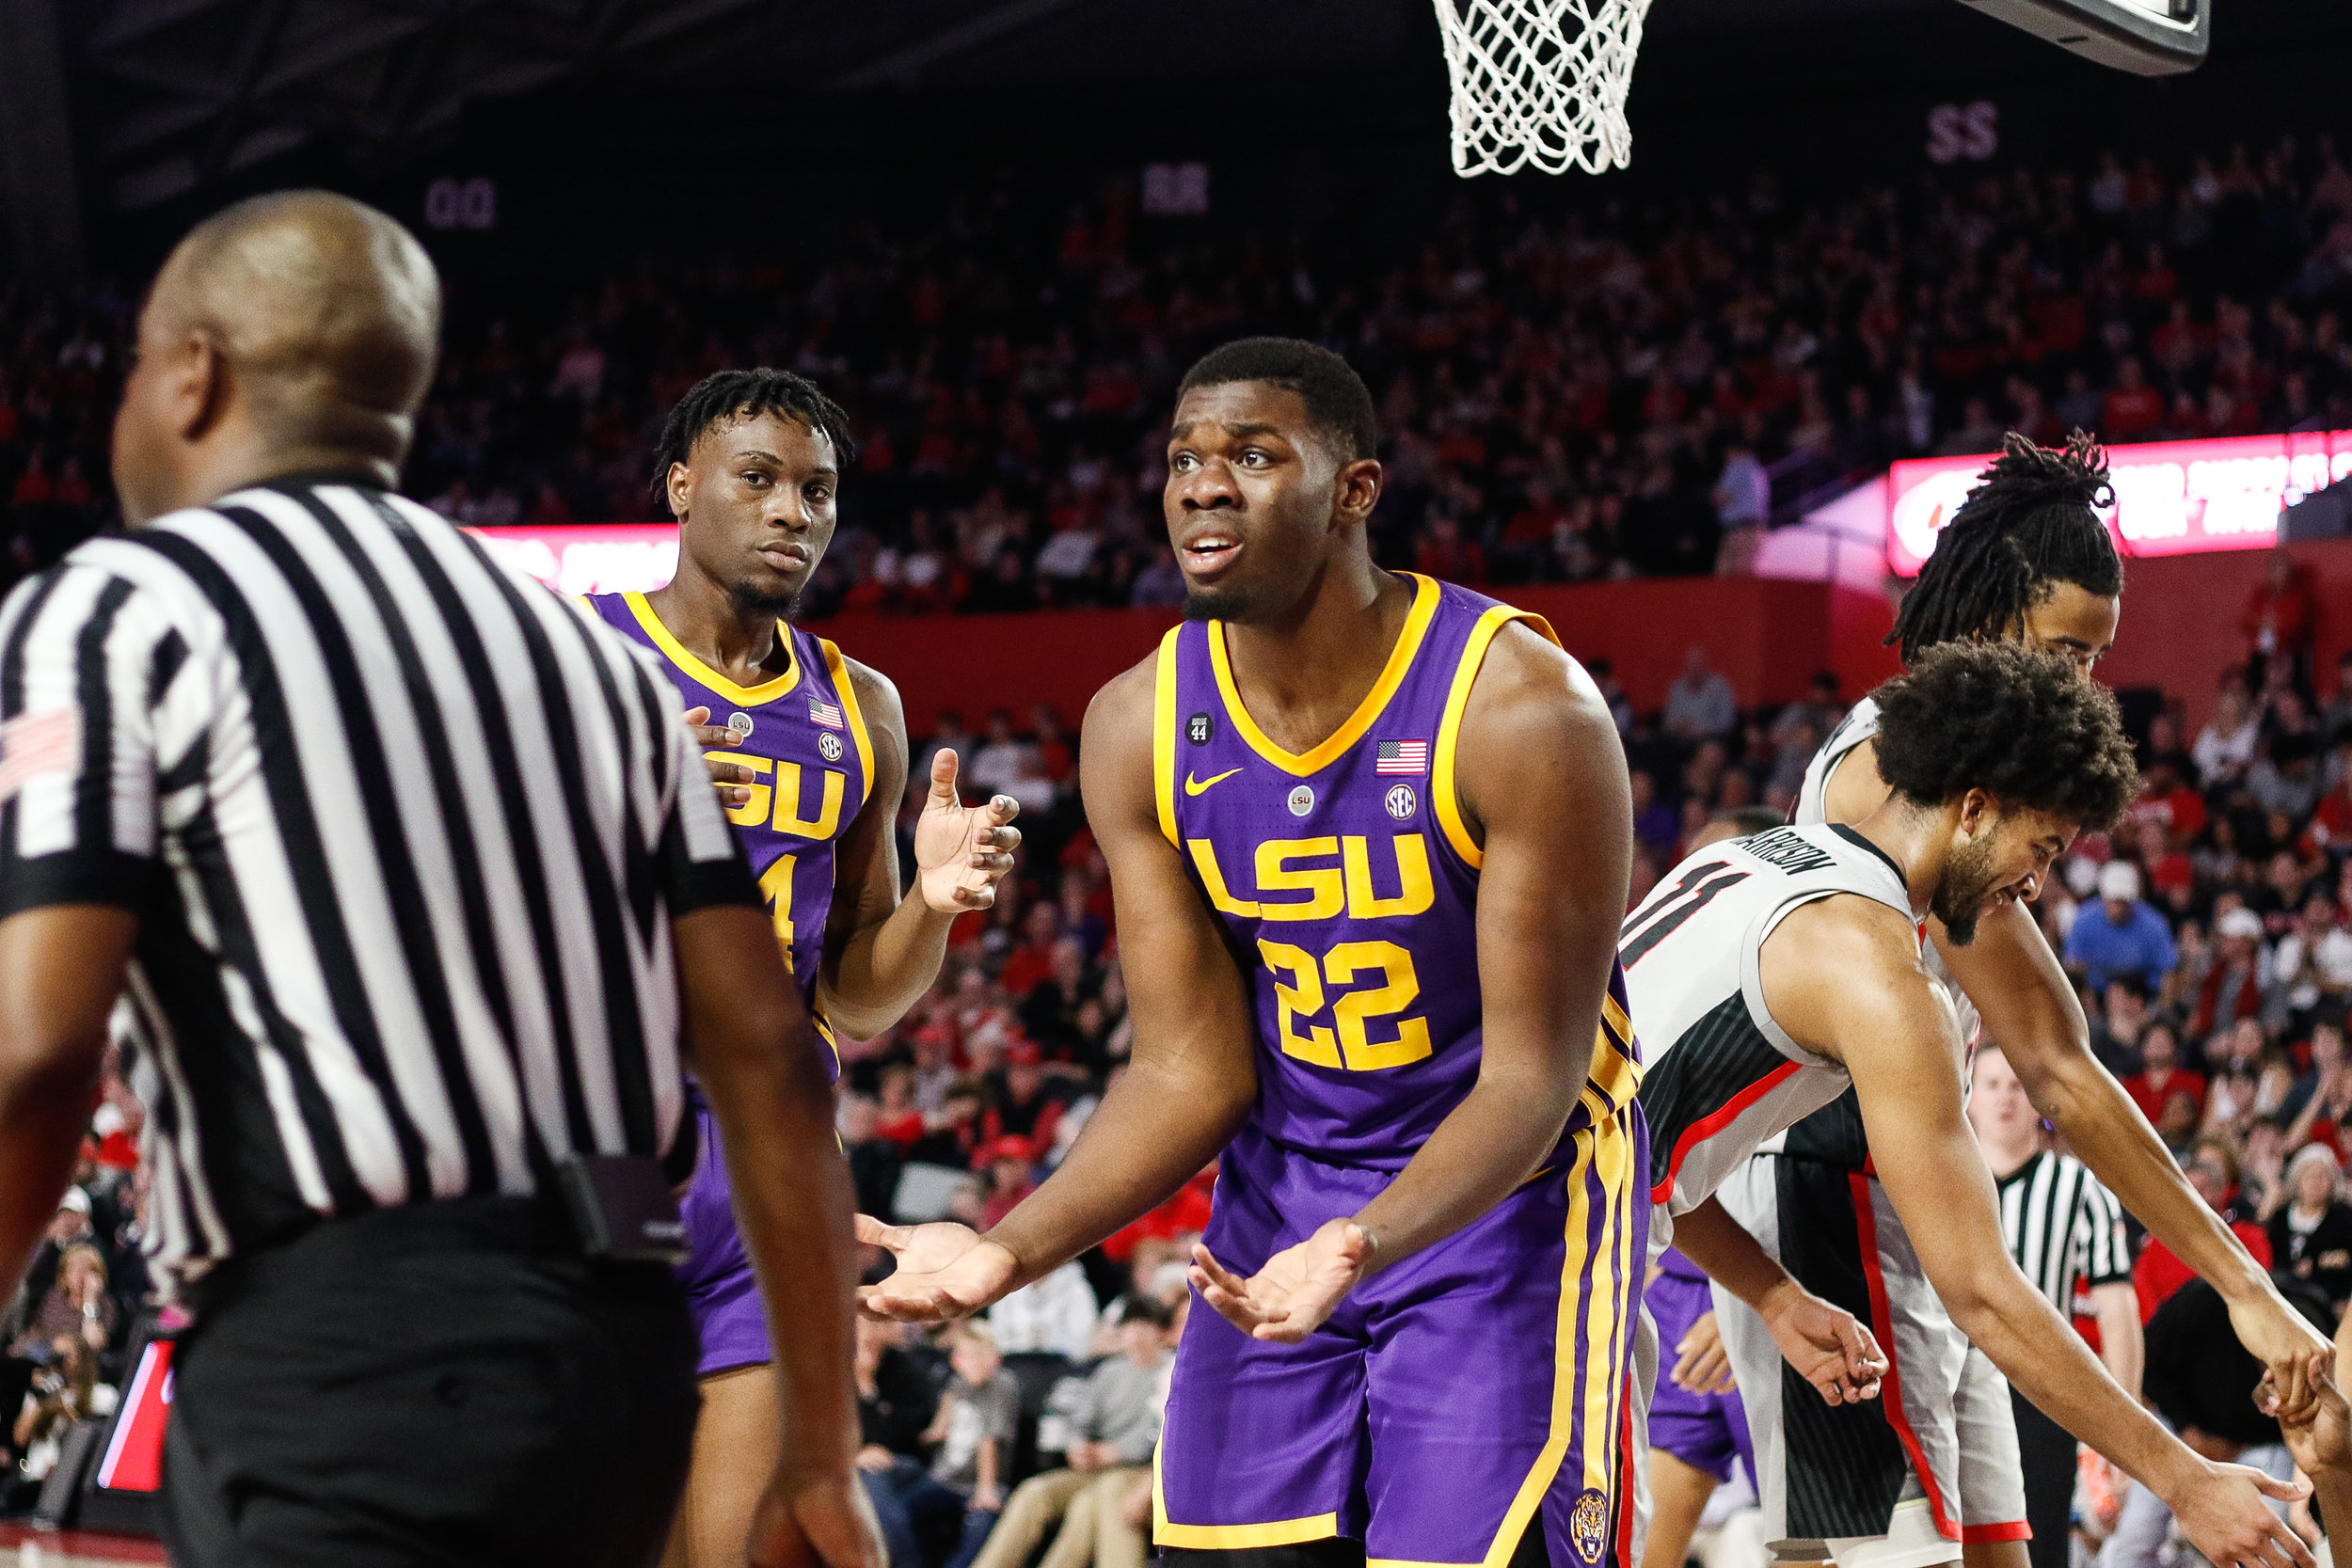 Louisiana forward Darius Days (22) looks to the referee in disbelief of a call during a men's basketball game between the University of Georgia in Stegeman Coliseum on Saturday, Feb. 16, 2019.